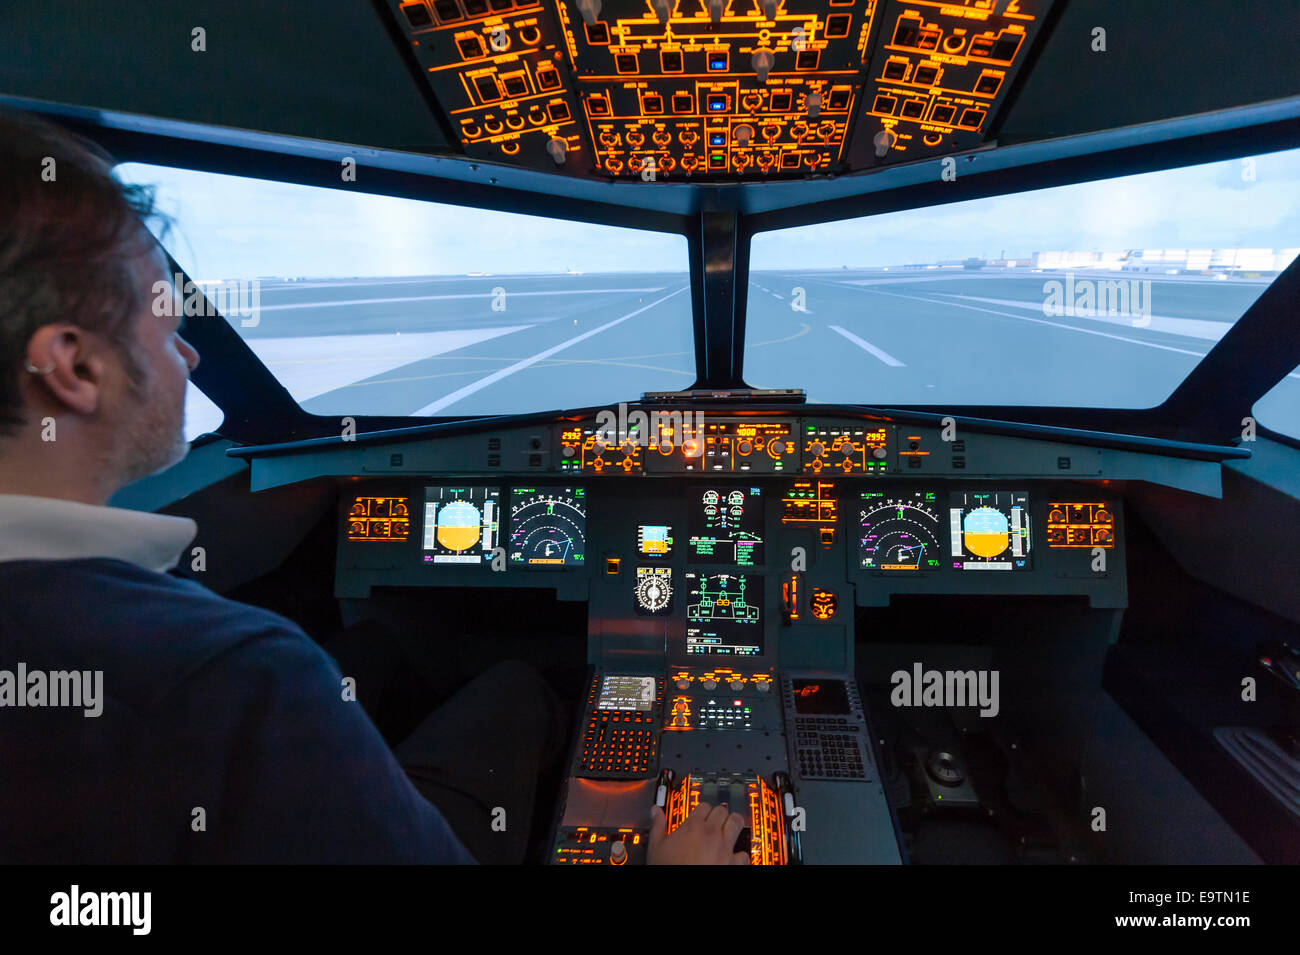 Cockpit of an Airbus A320 flight simulator that is used for training of professional airline pilots (preparing takeoff) - Stock Image